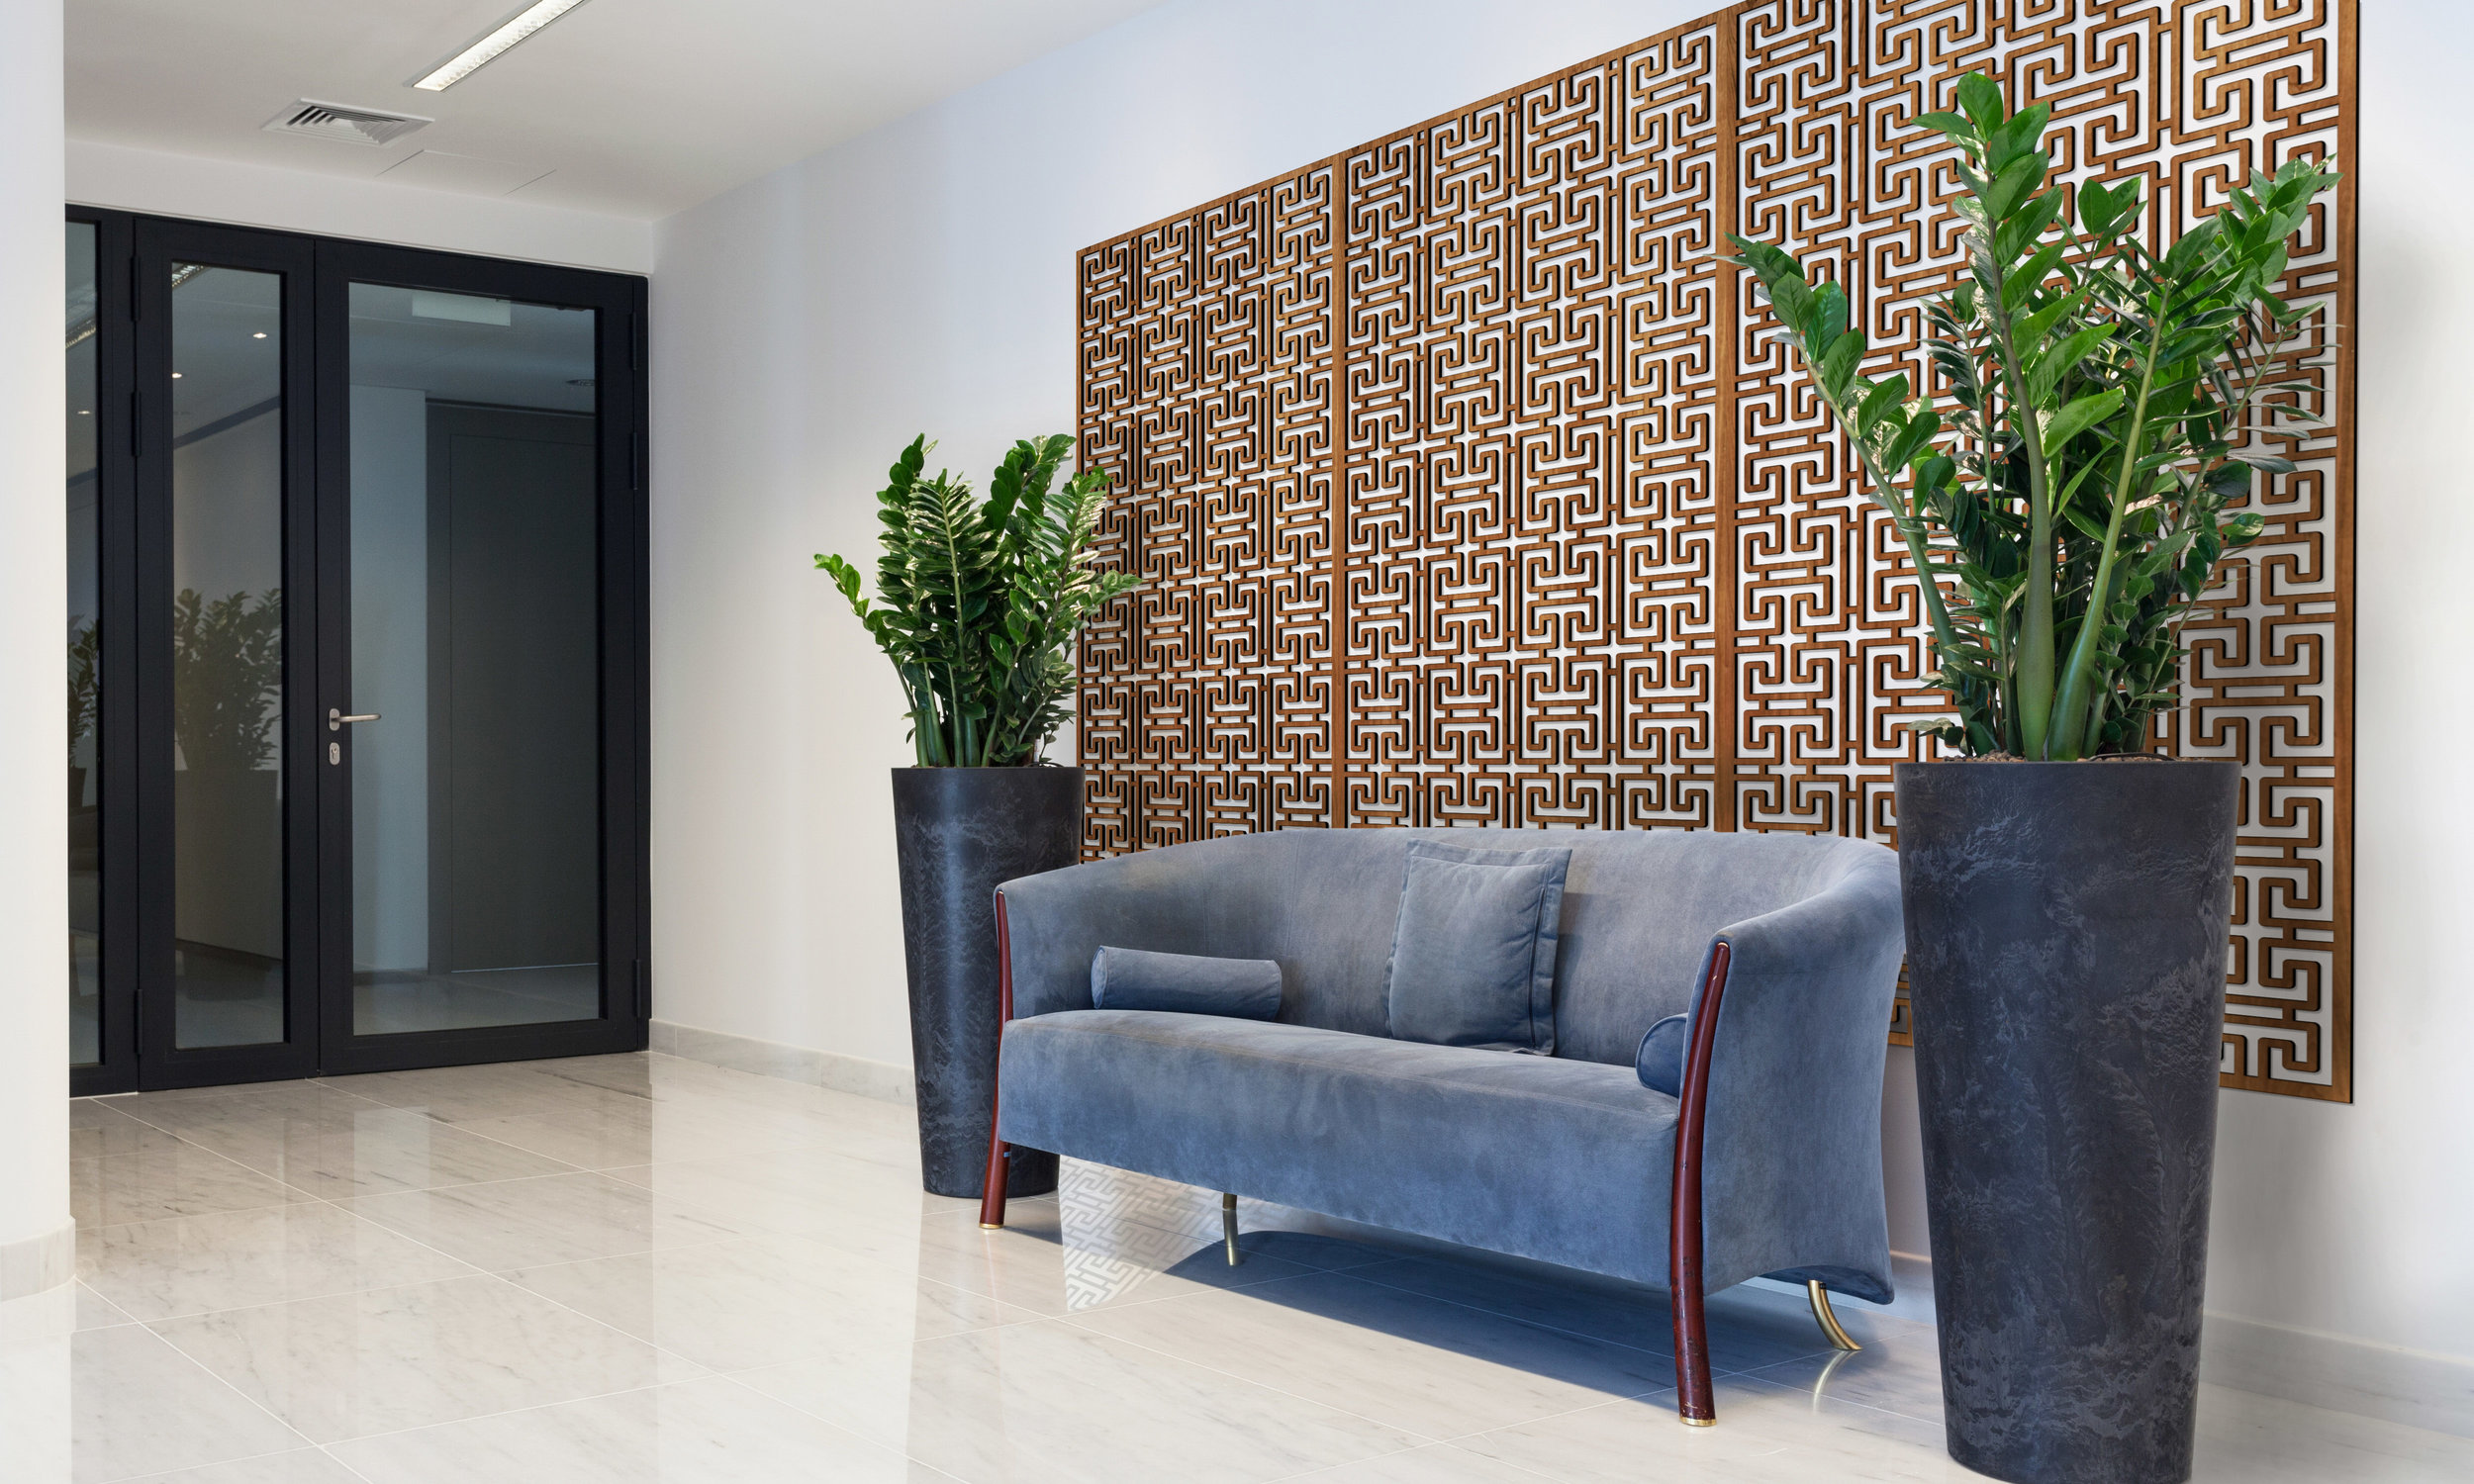 Installation Rendering A   Bejing Grille decorative office wall panel - shown in Cherry